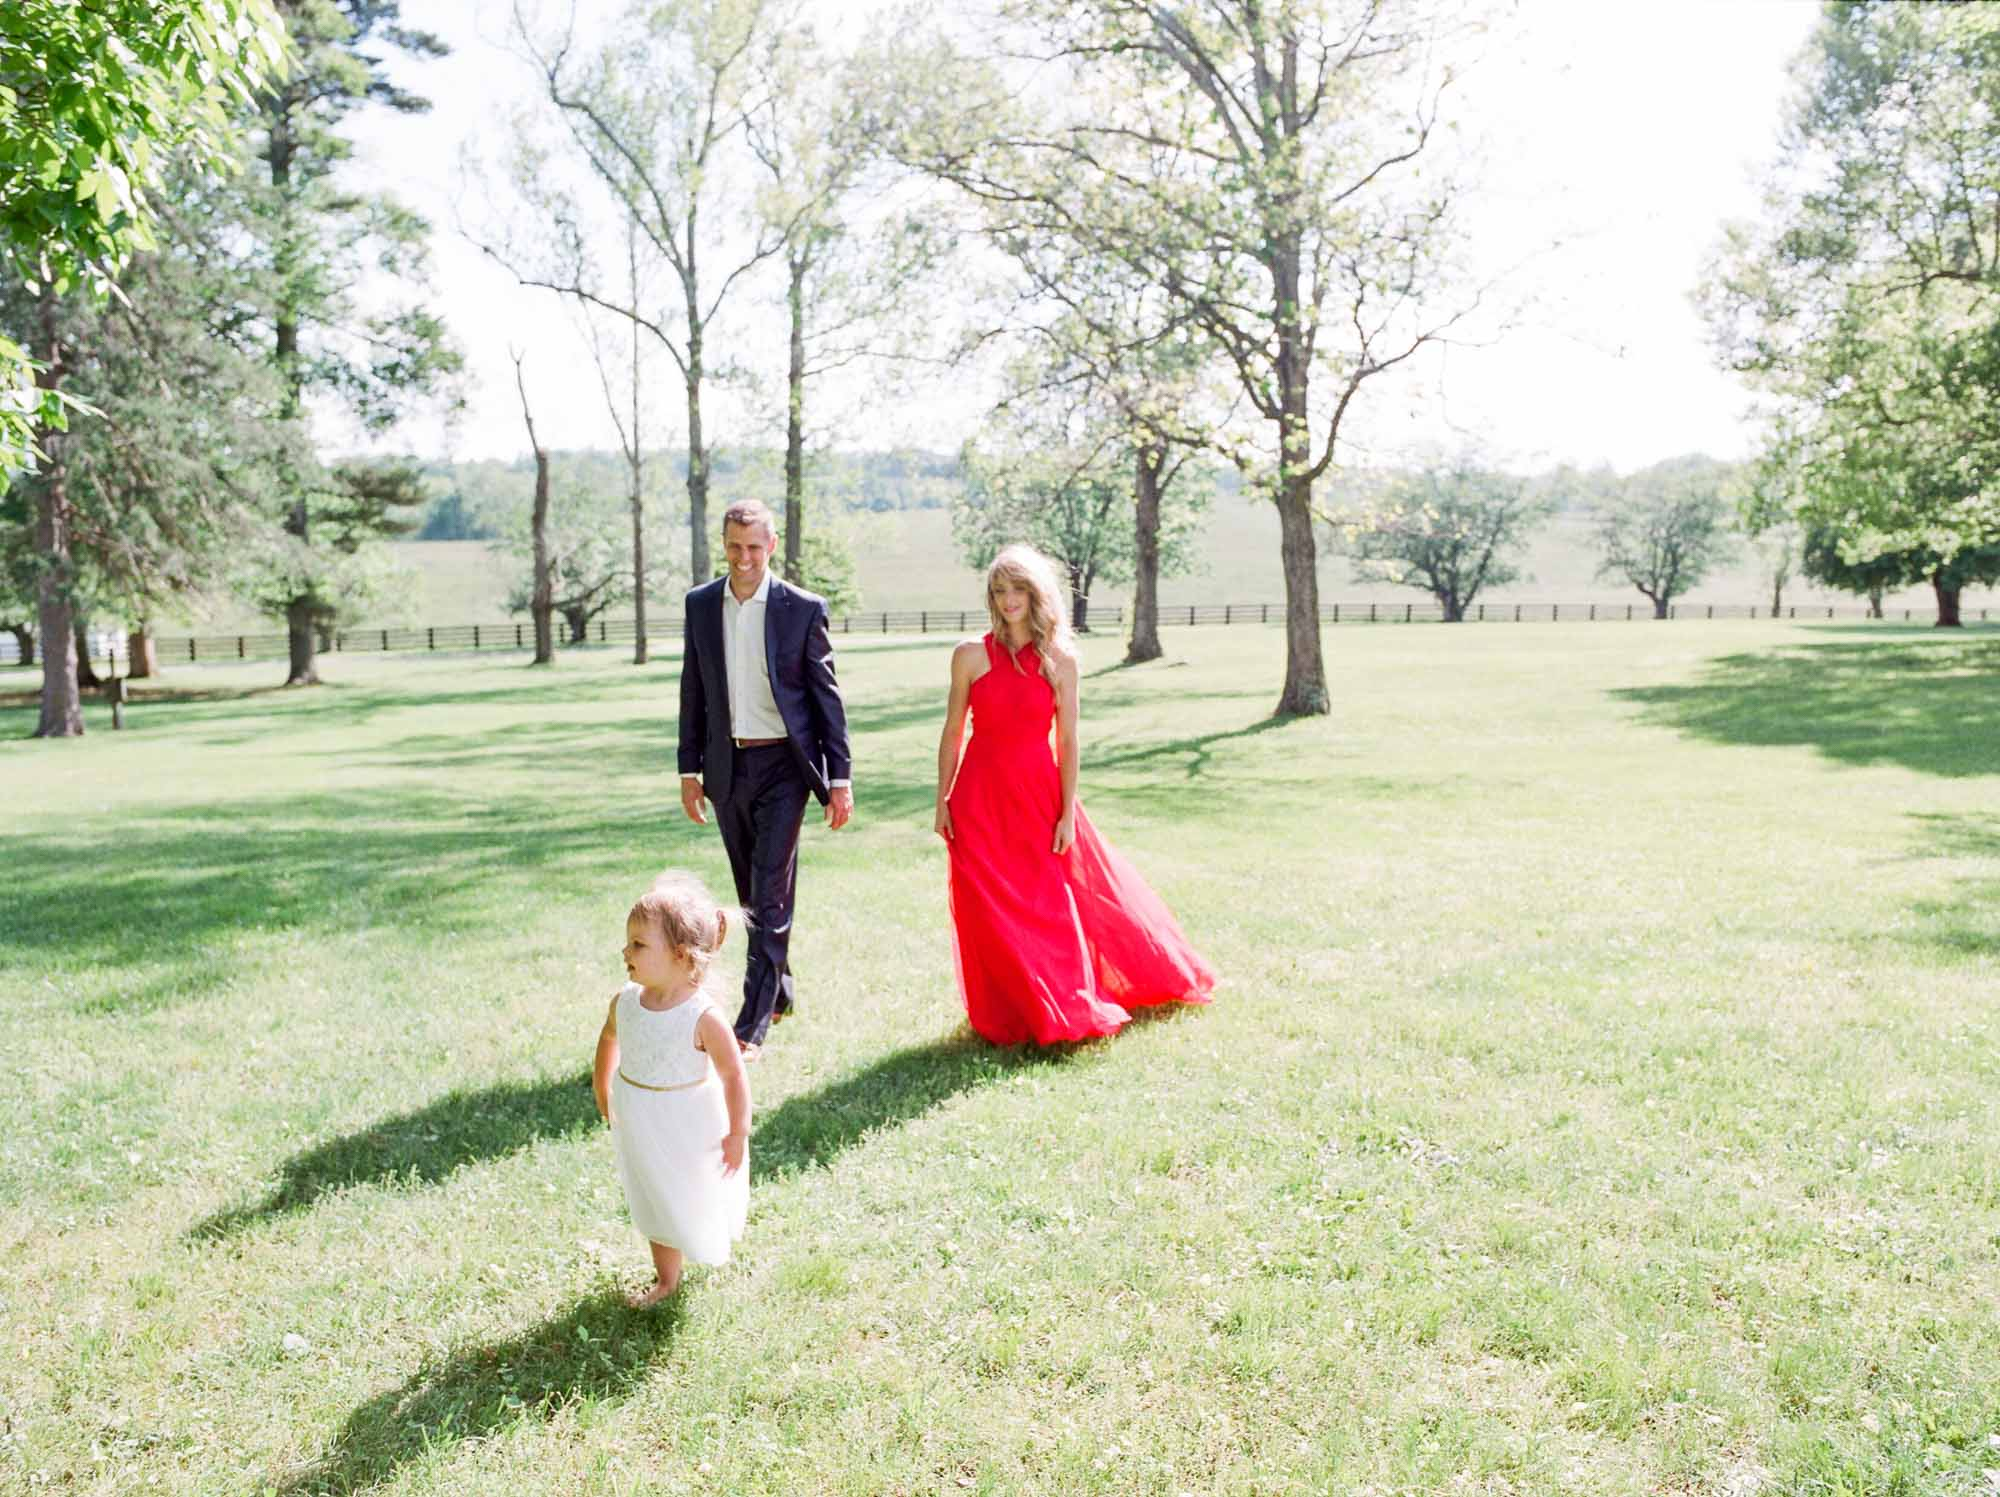 charlotte_lynchburg_film_family_wedding_photographer-34.jpg